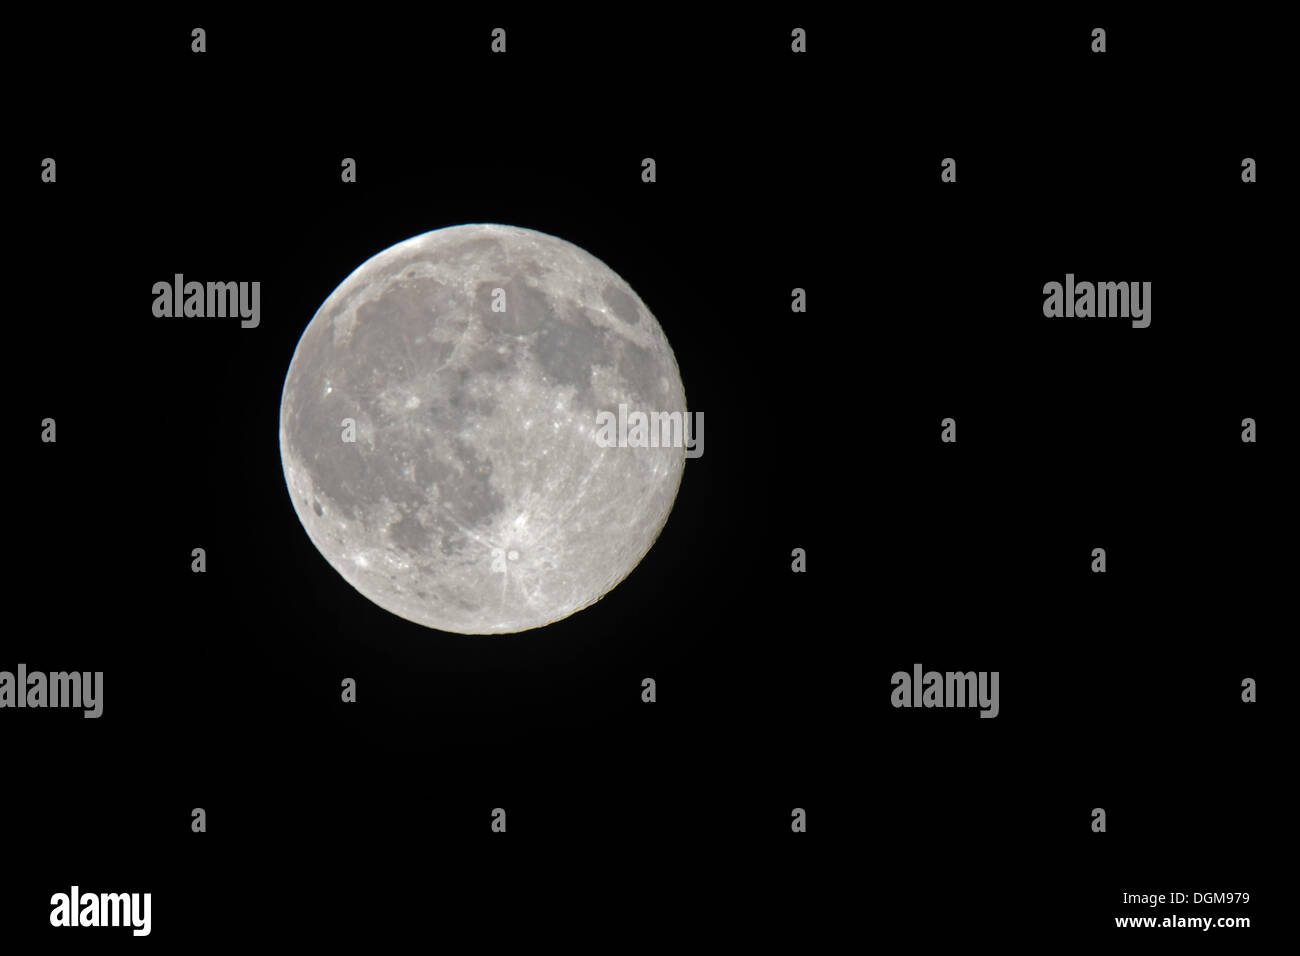 Earth moon, full moon as seen from the northern hemisphere - Stock Image